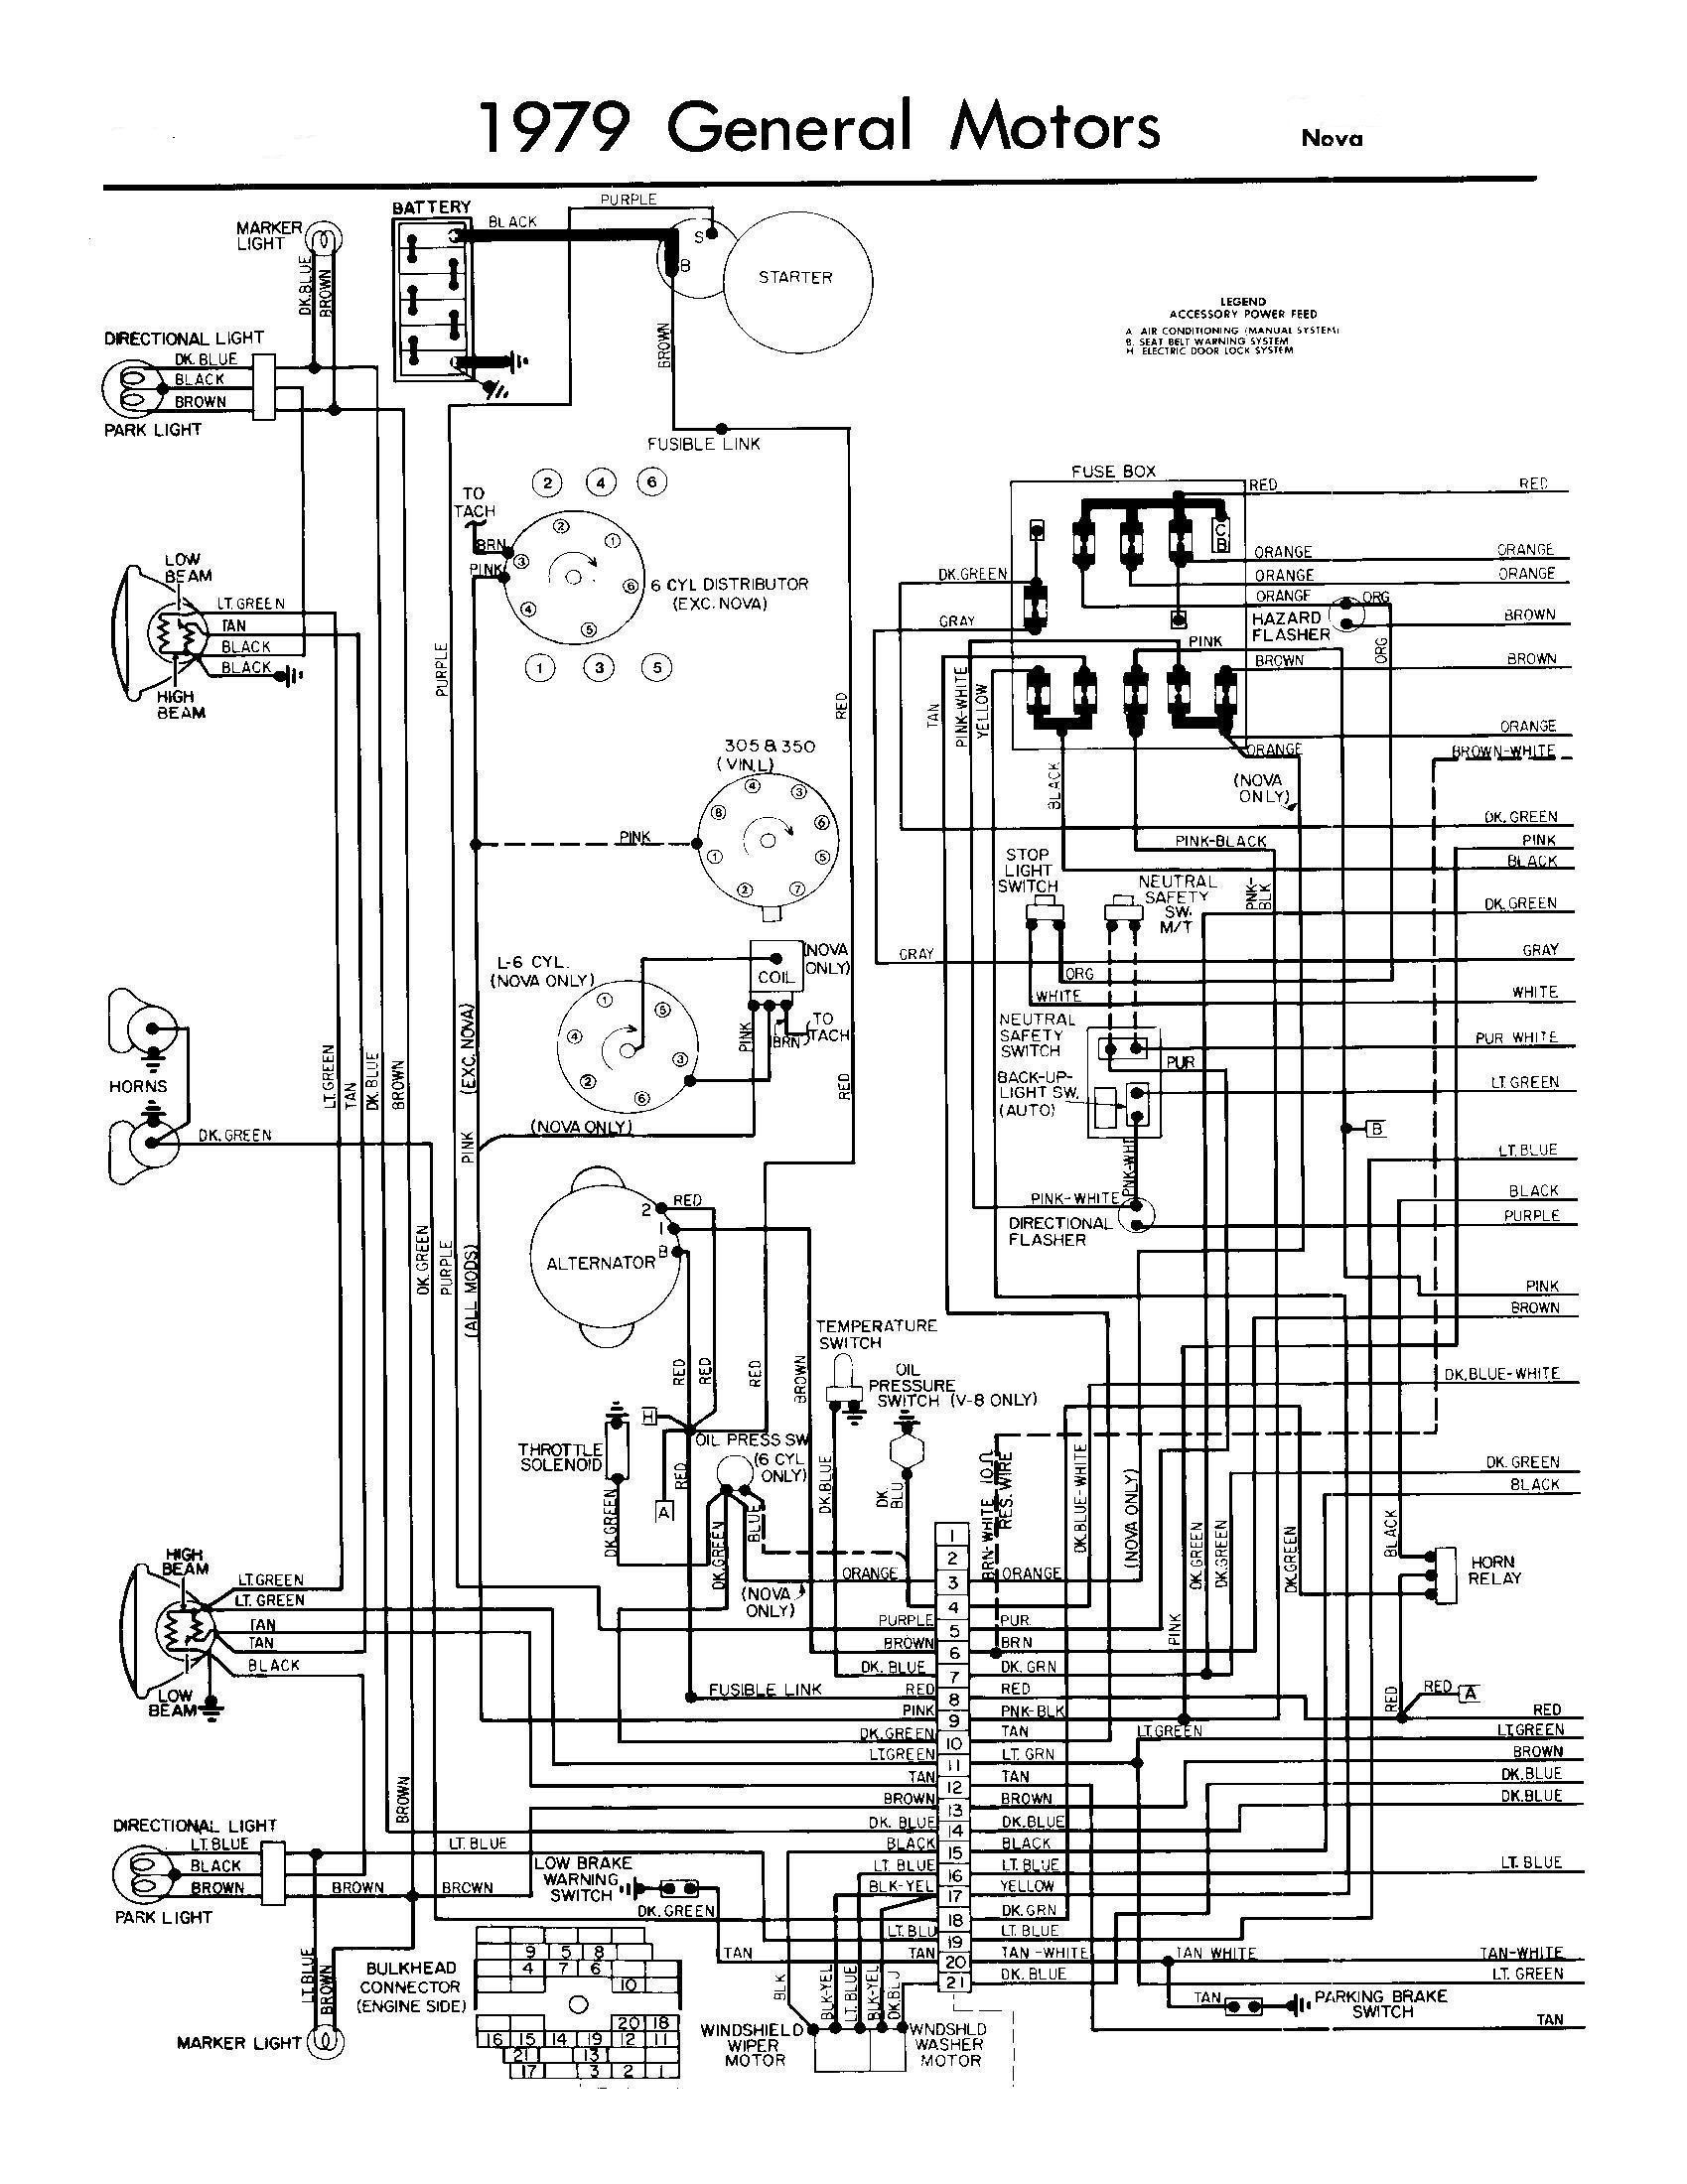 1981 camaro fuse panel diagram data wiring diagram 85' Camaro Radio Wiring Diagram